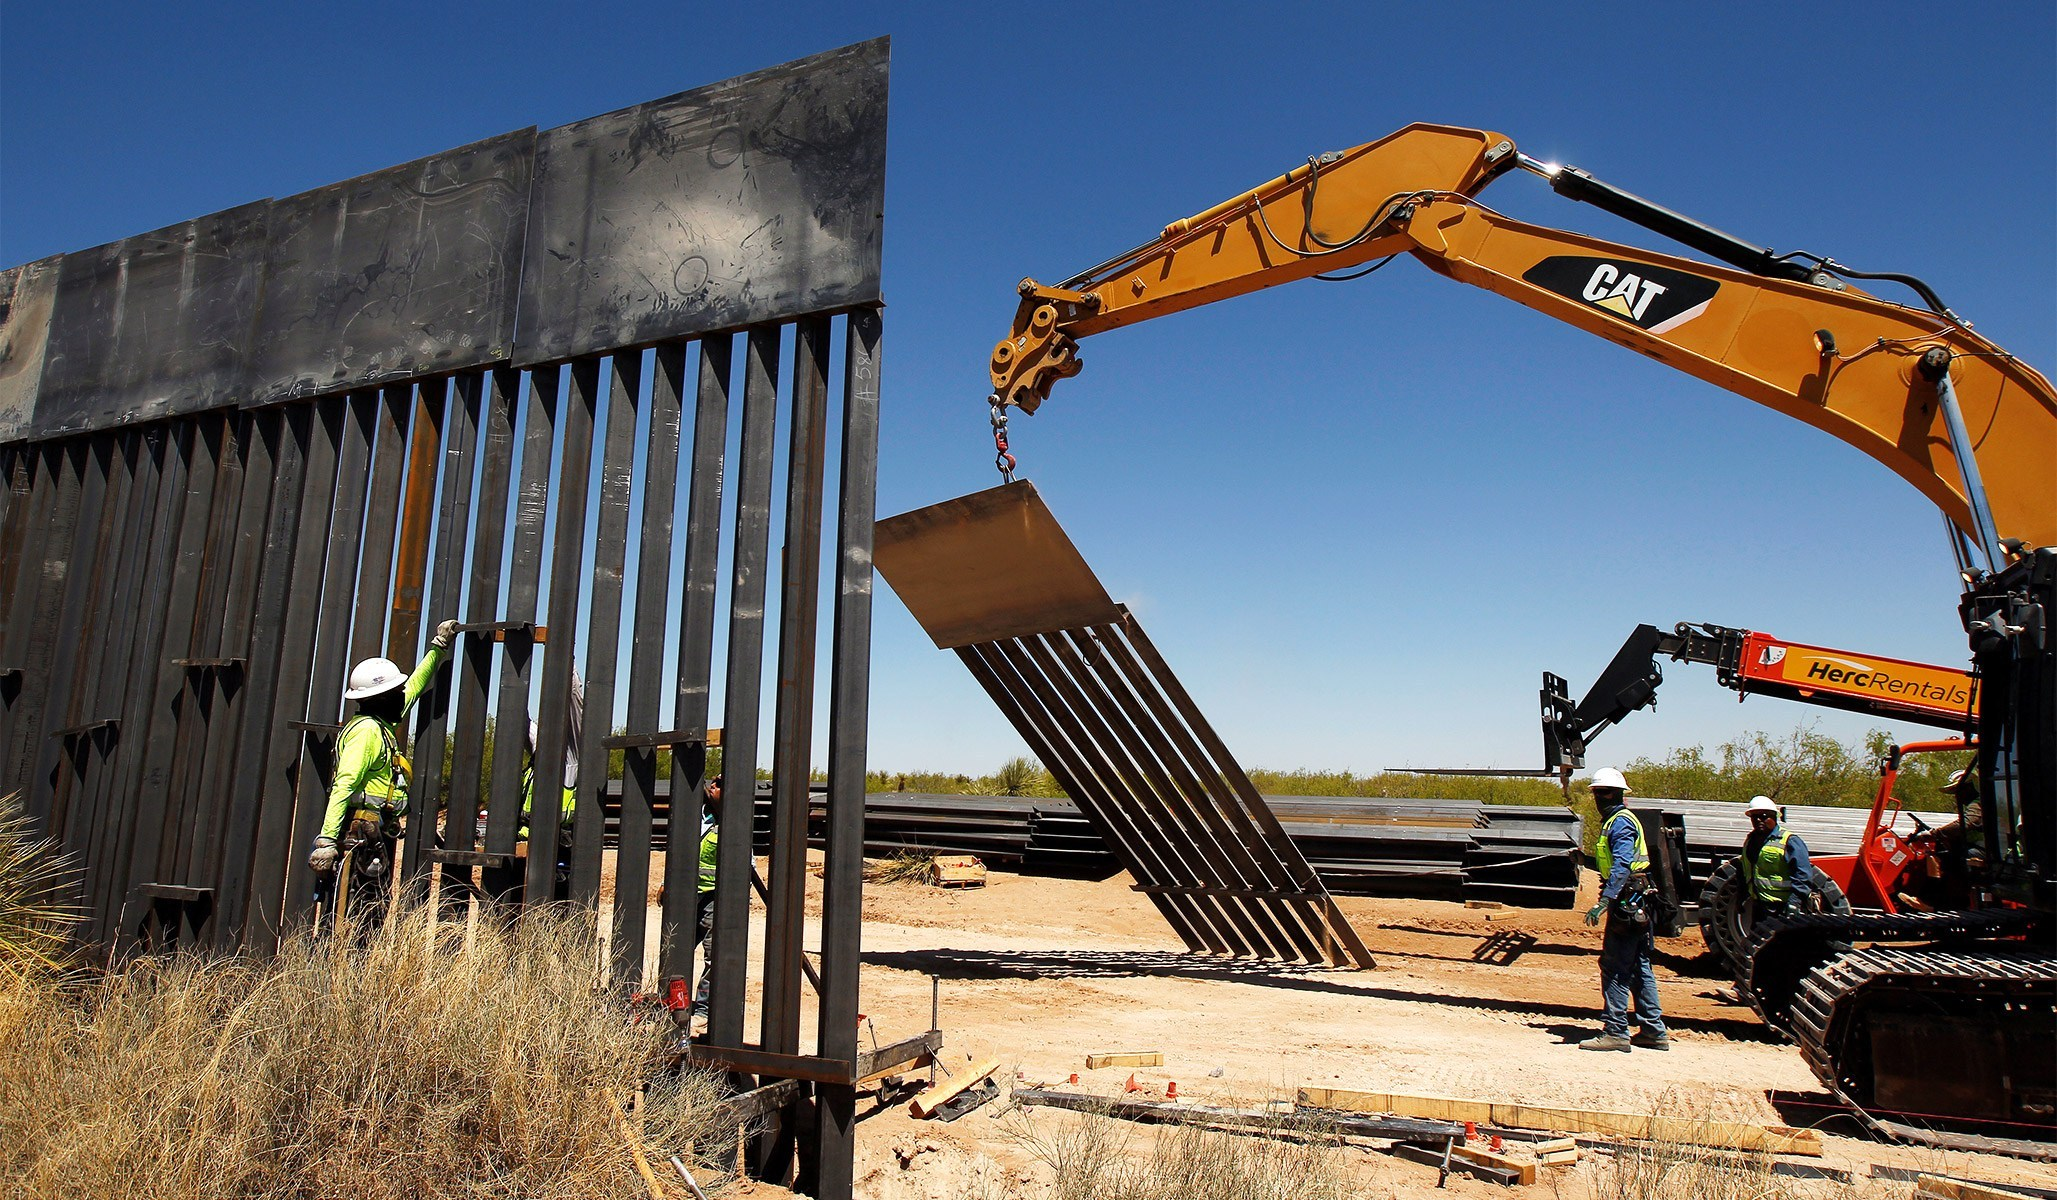 The Border Wall Construction: Should We Support this Cause?